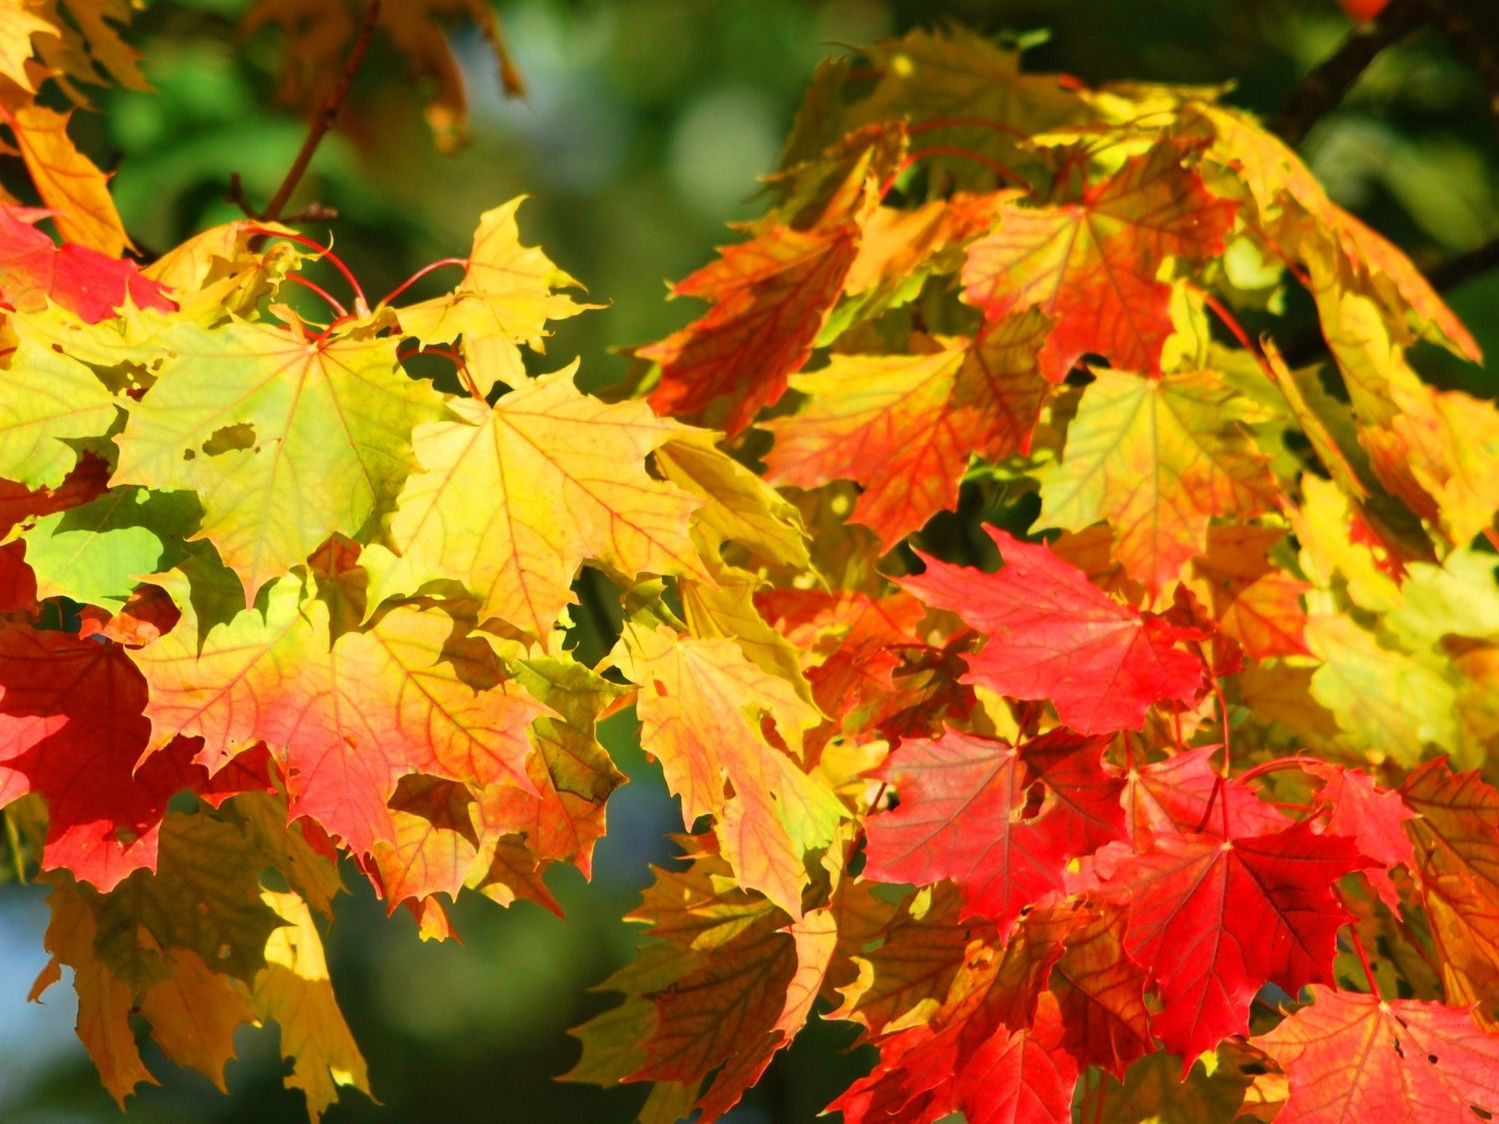 autumn-fall-foliage-leaves-63614.jpg